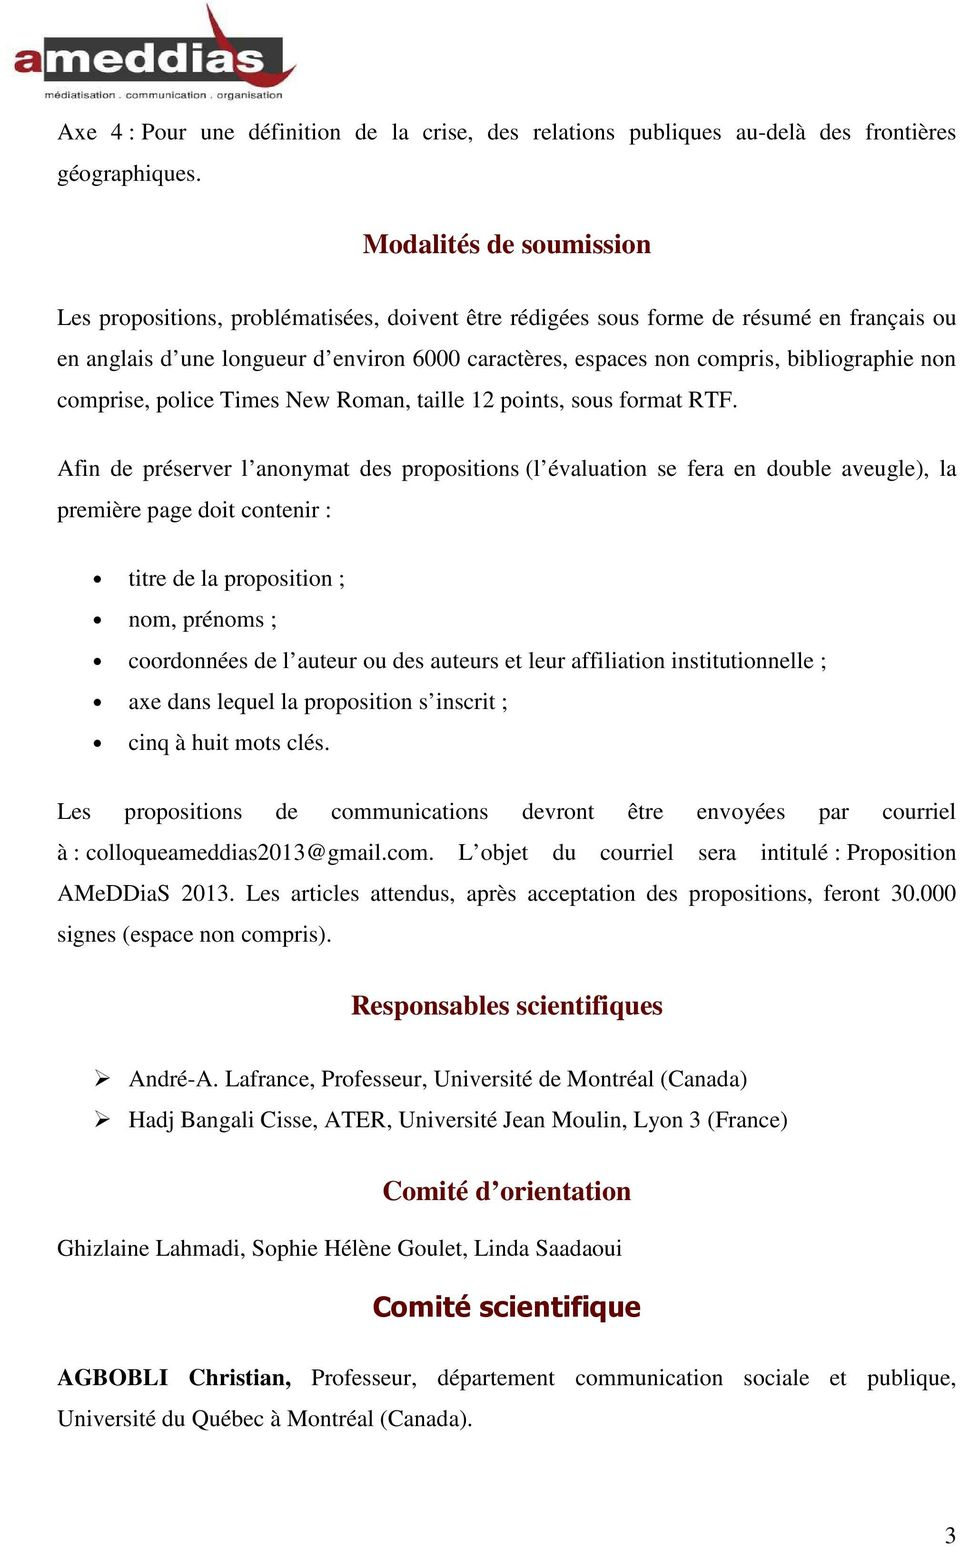 bibliographie non comprise, police Times New Roman, taille 12 points, sous format RTF.